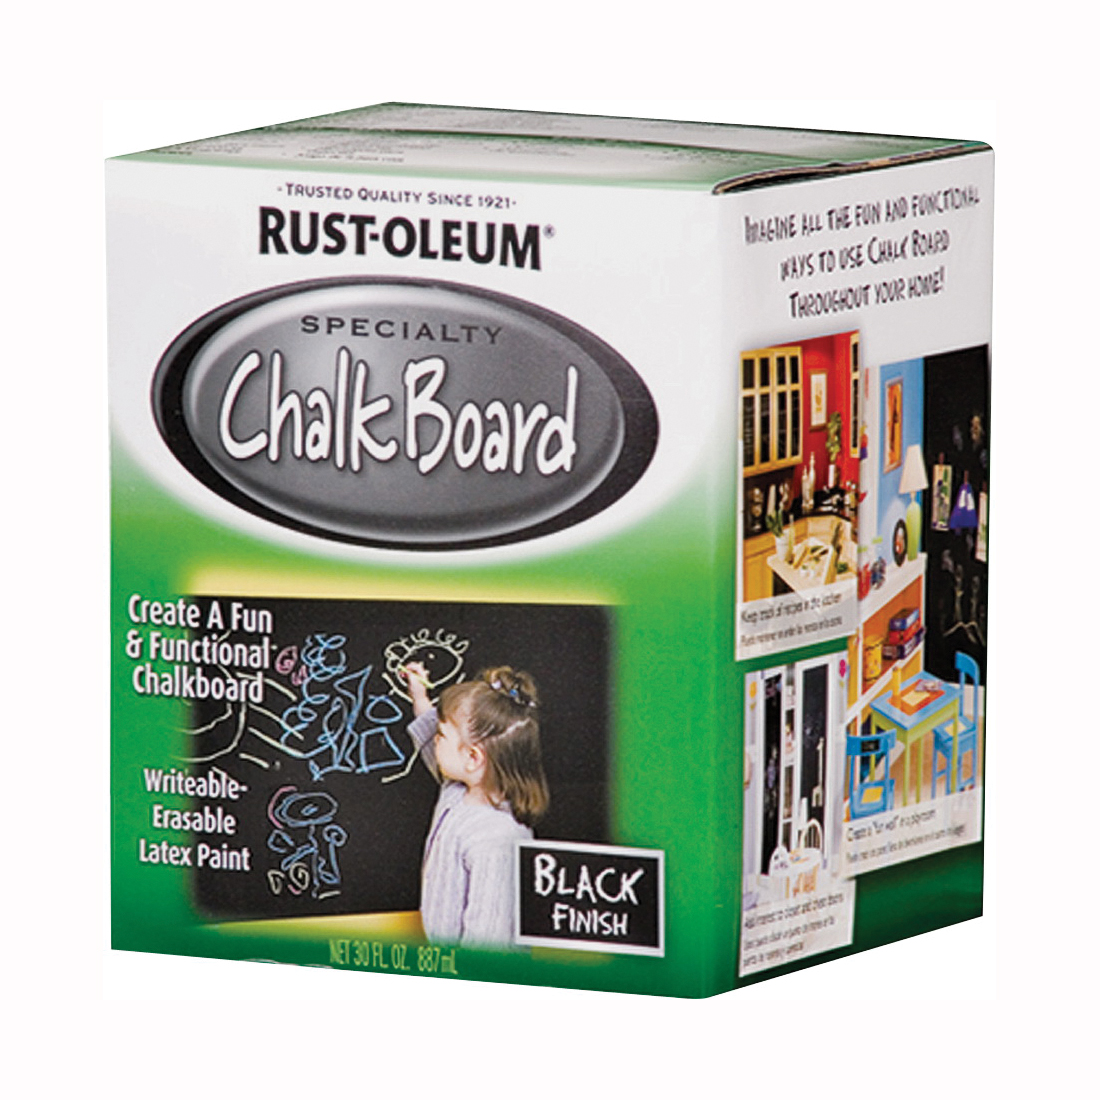 Picture of RUST-OLEUM SPECIALTY 206540 Chalkboard Paint Black, Mild, Black, 1 qt, Can